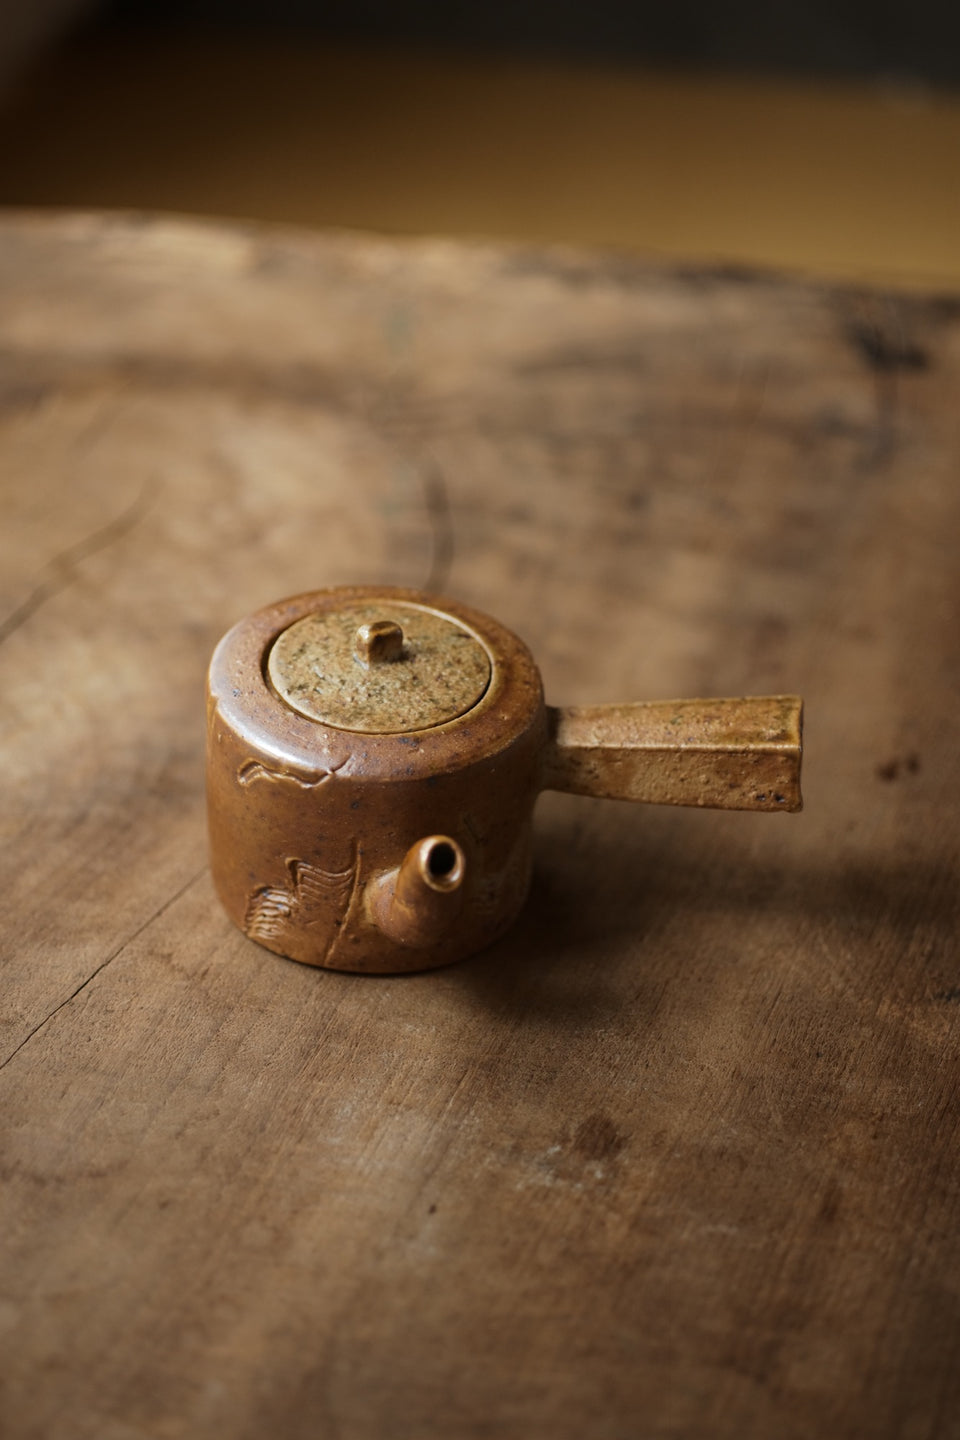 Handmade Firewood-Shaped Side Handle Teapot - Xiao Yang